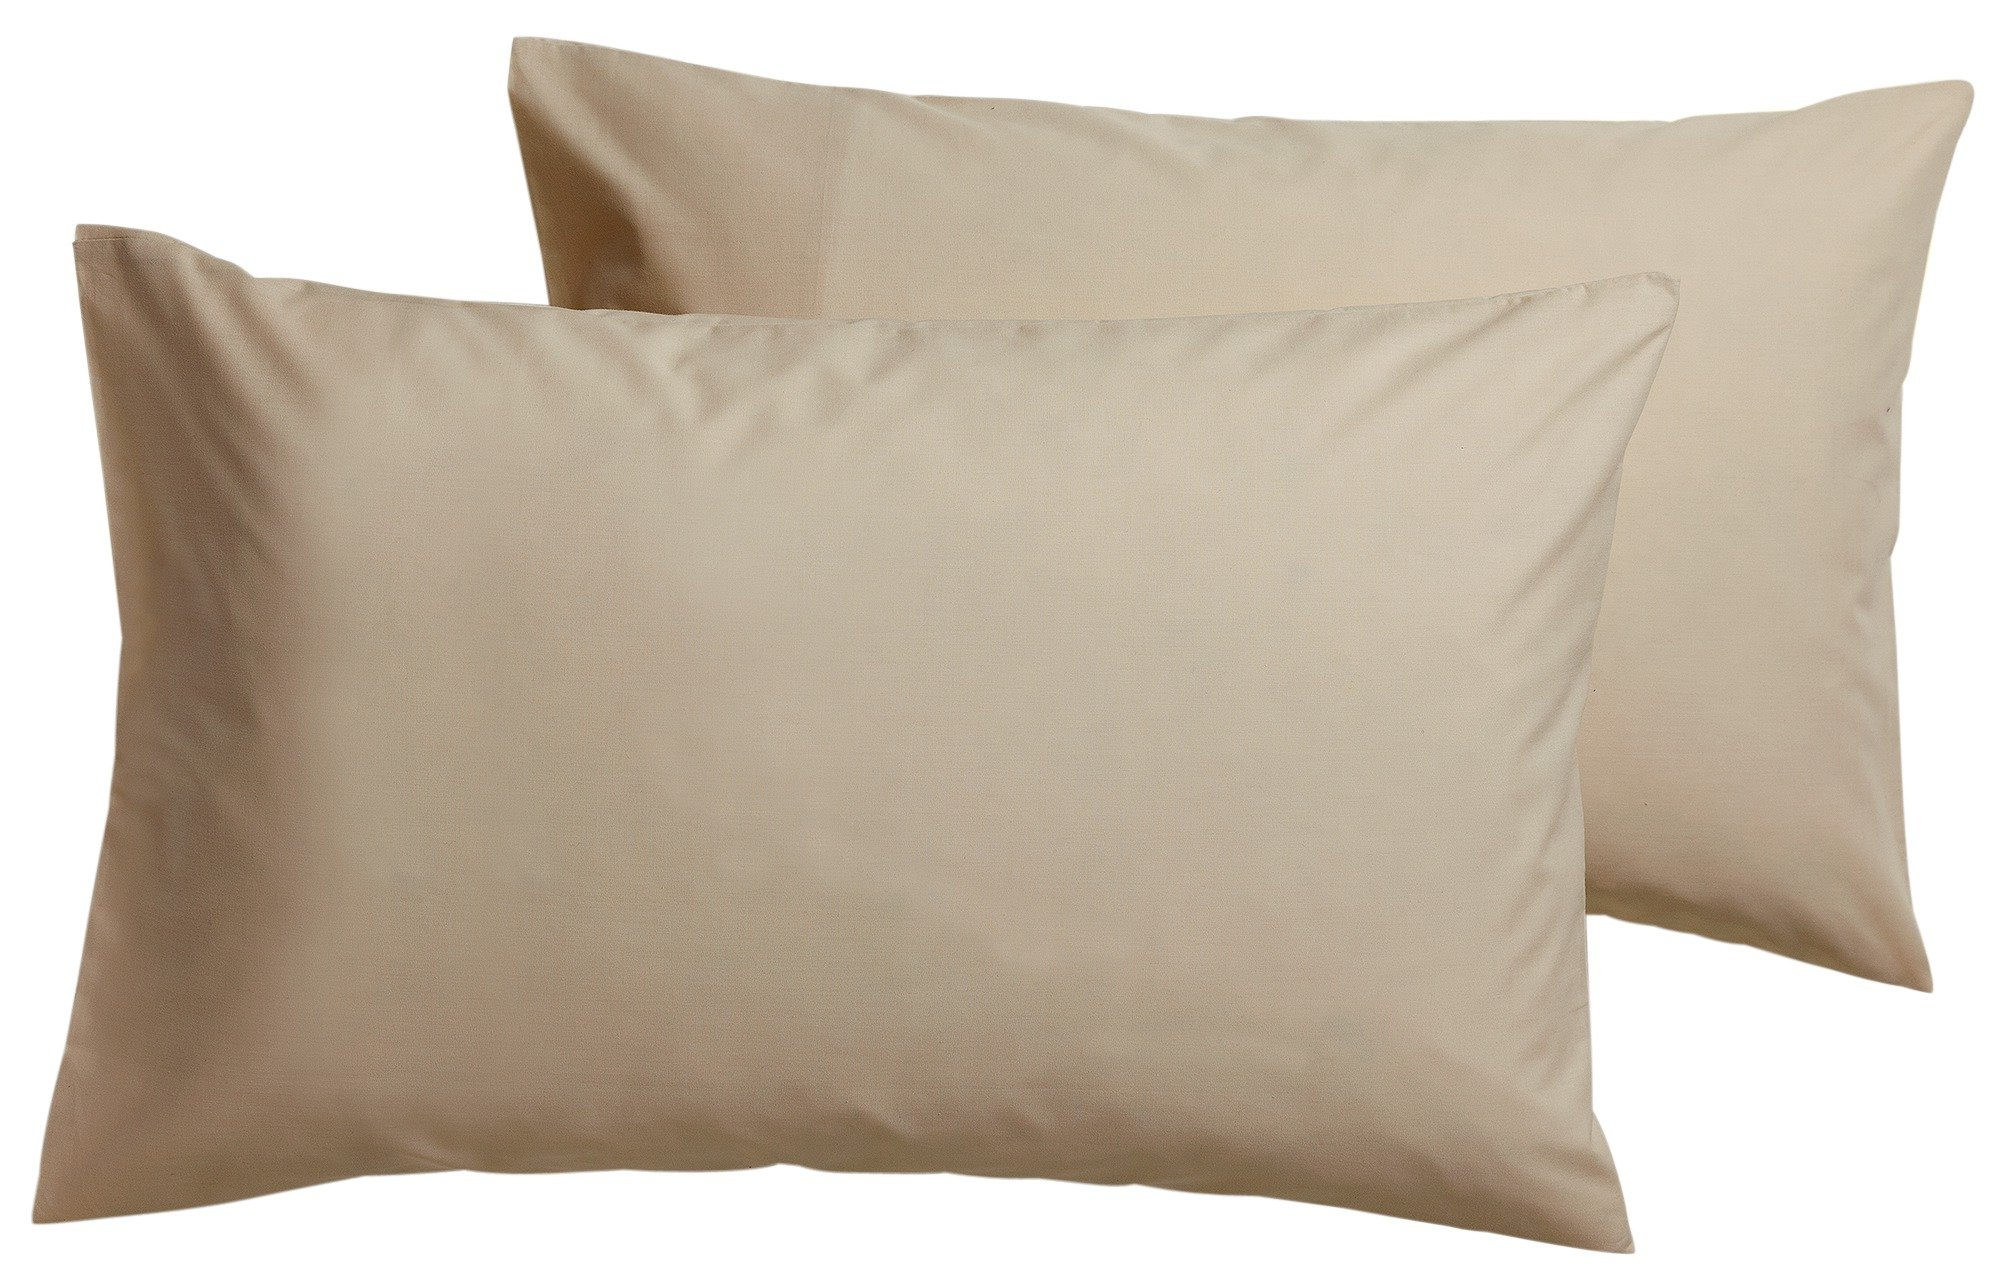 Argos Home Pair of Non Iron Housewife Pillowcases - Cream